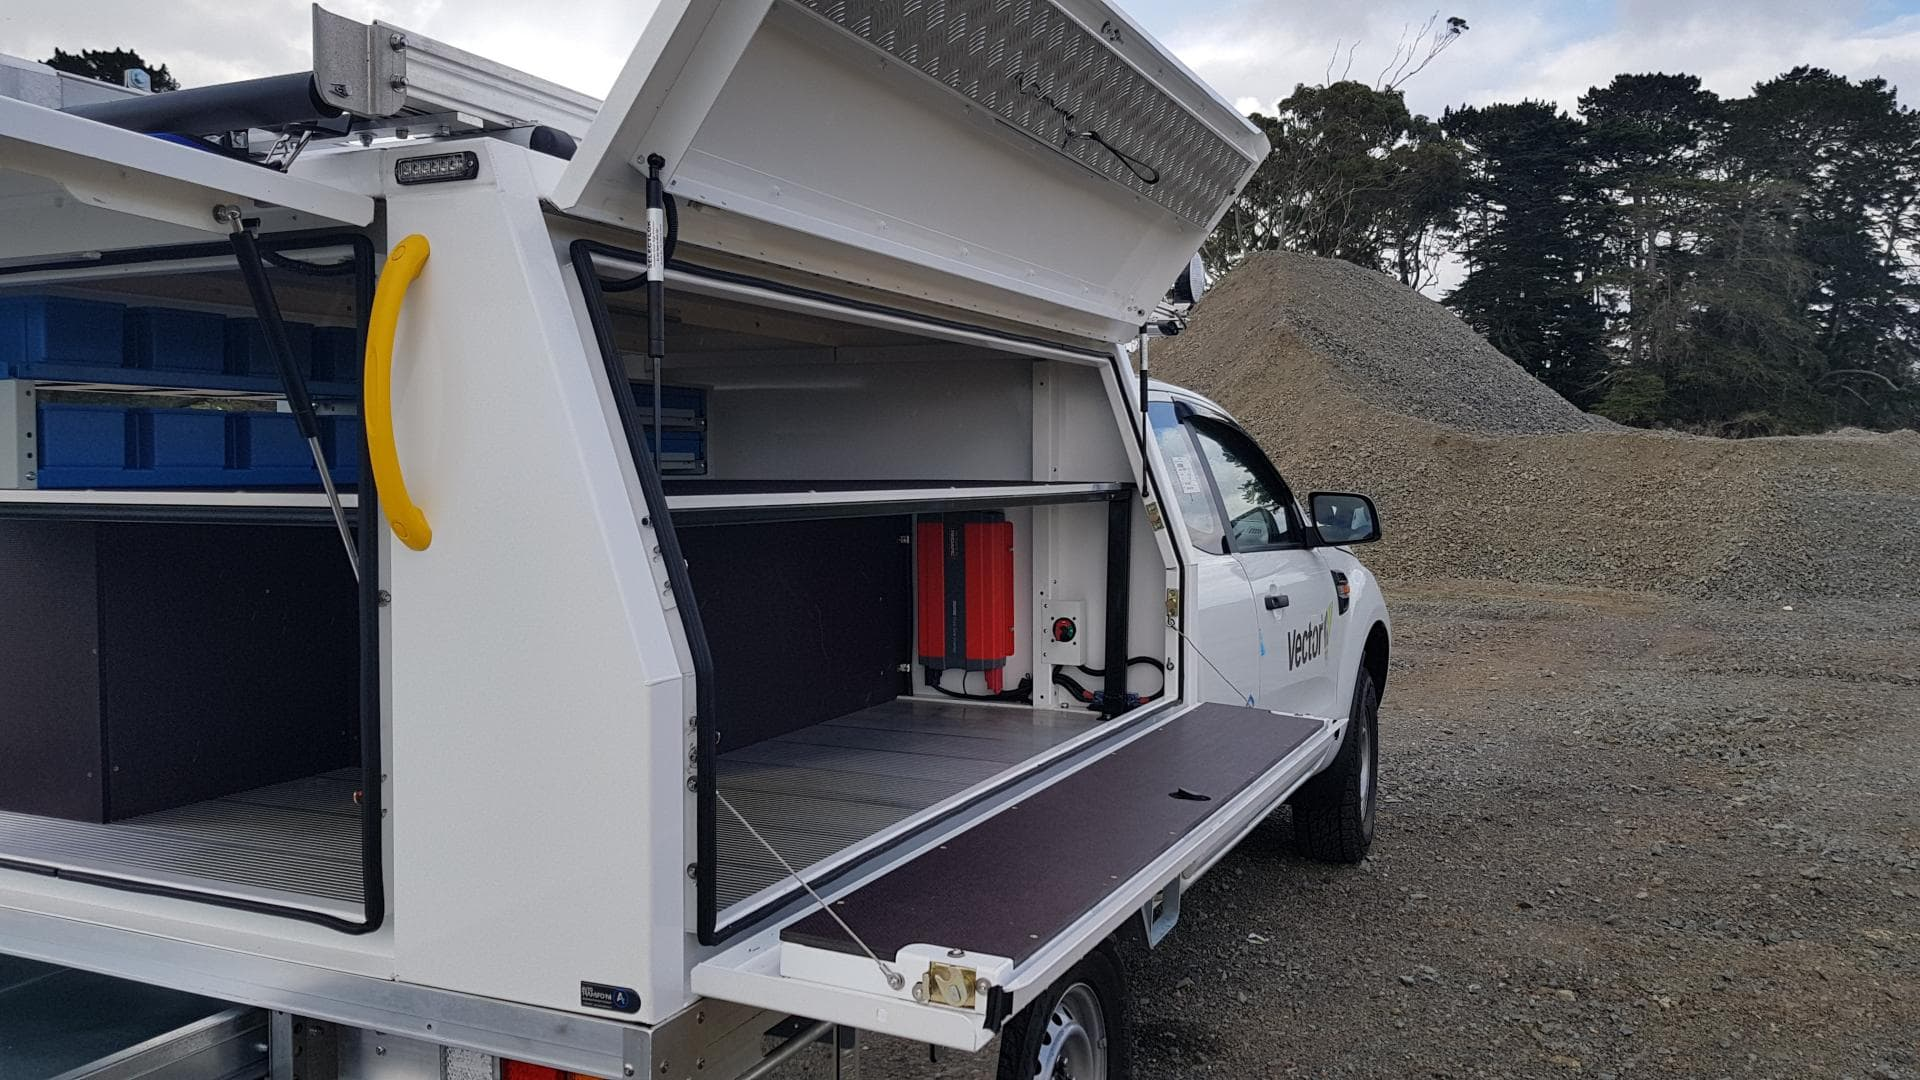 Ute service body for electricians